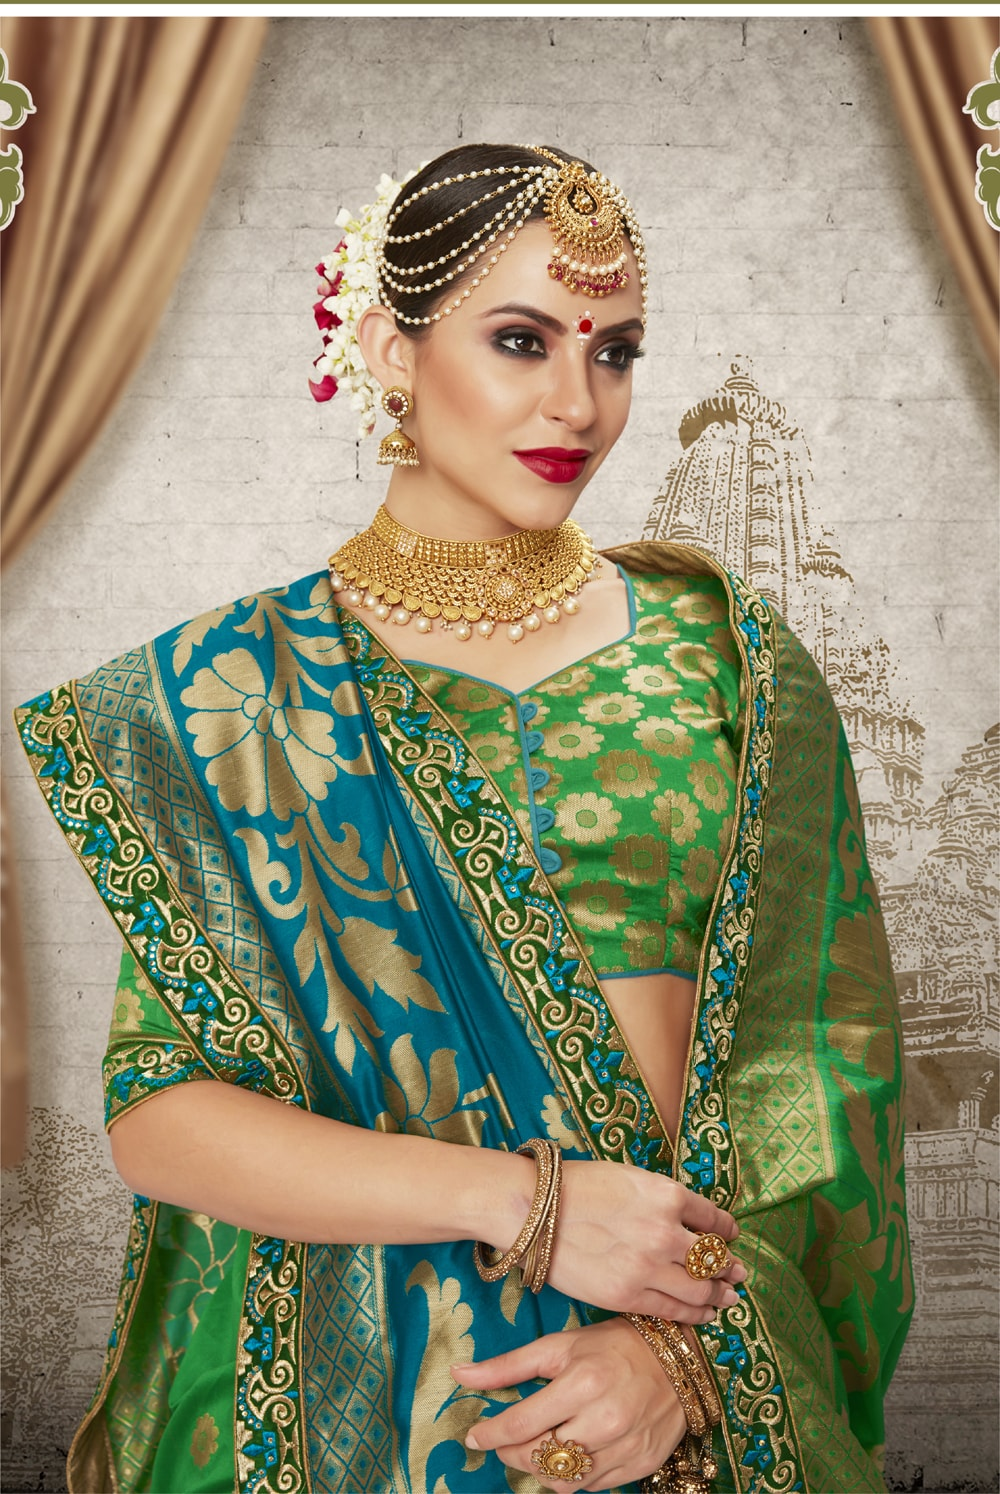 Women Green Color Silk Keral Trediotnal Wear Sarees Blouse - 400248249